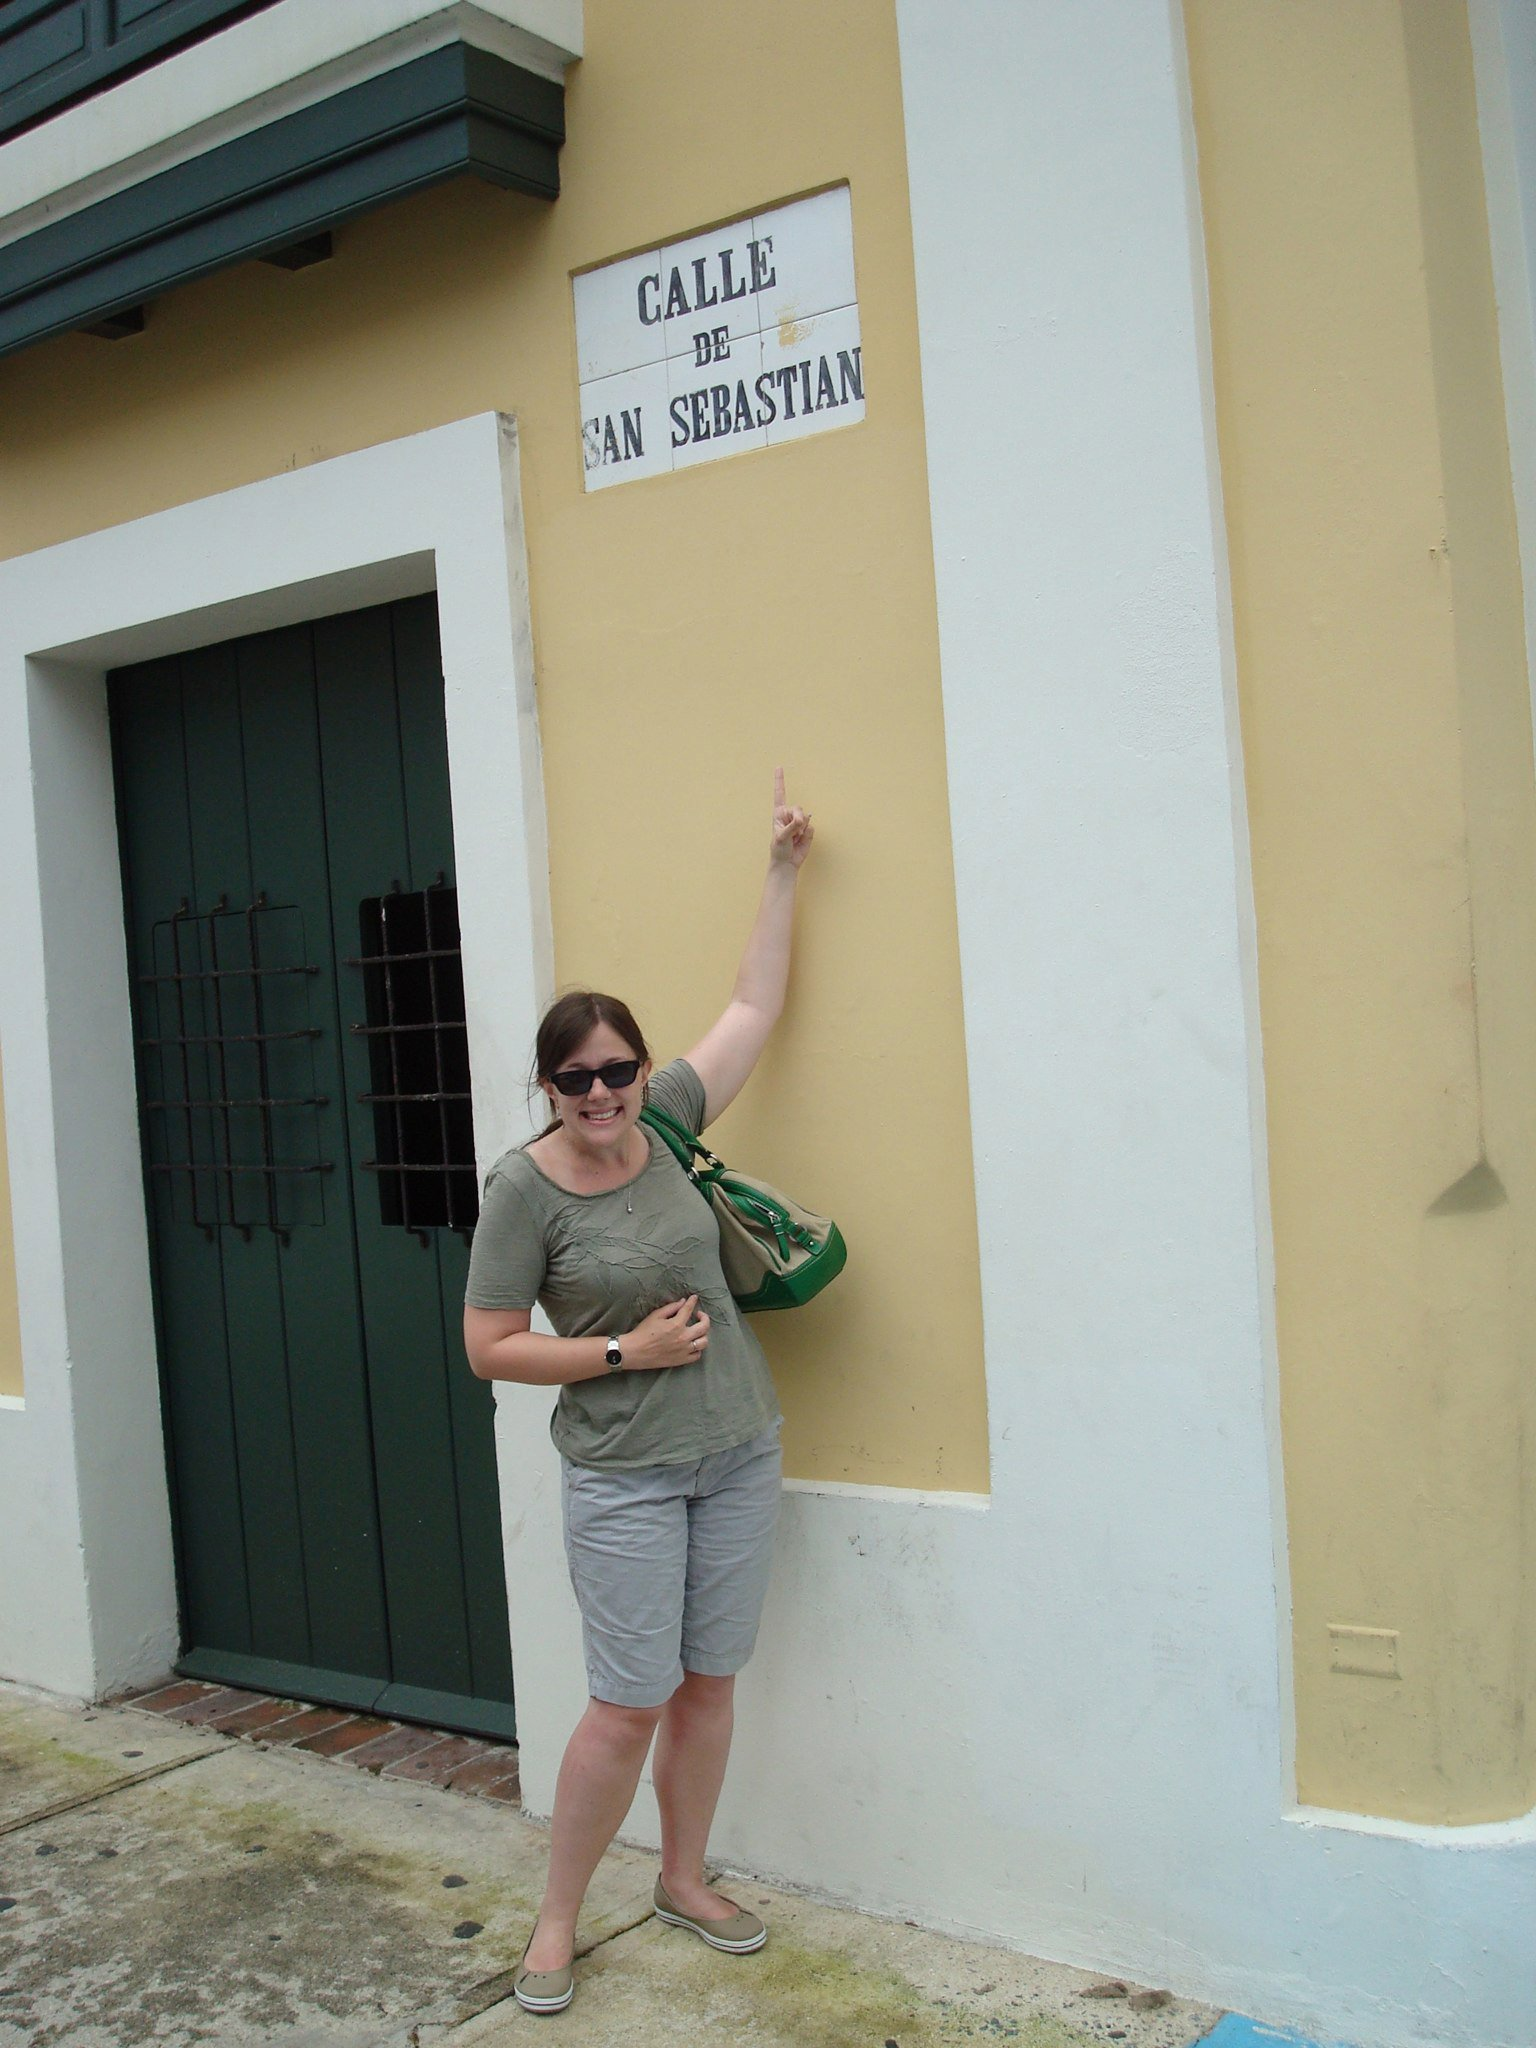 Pretty excited to find Calle de San Sebastian when I first arrived in San Juan, PR (I was living in San Sebastian, Spain at the time!)